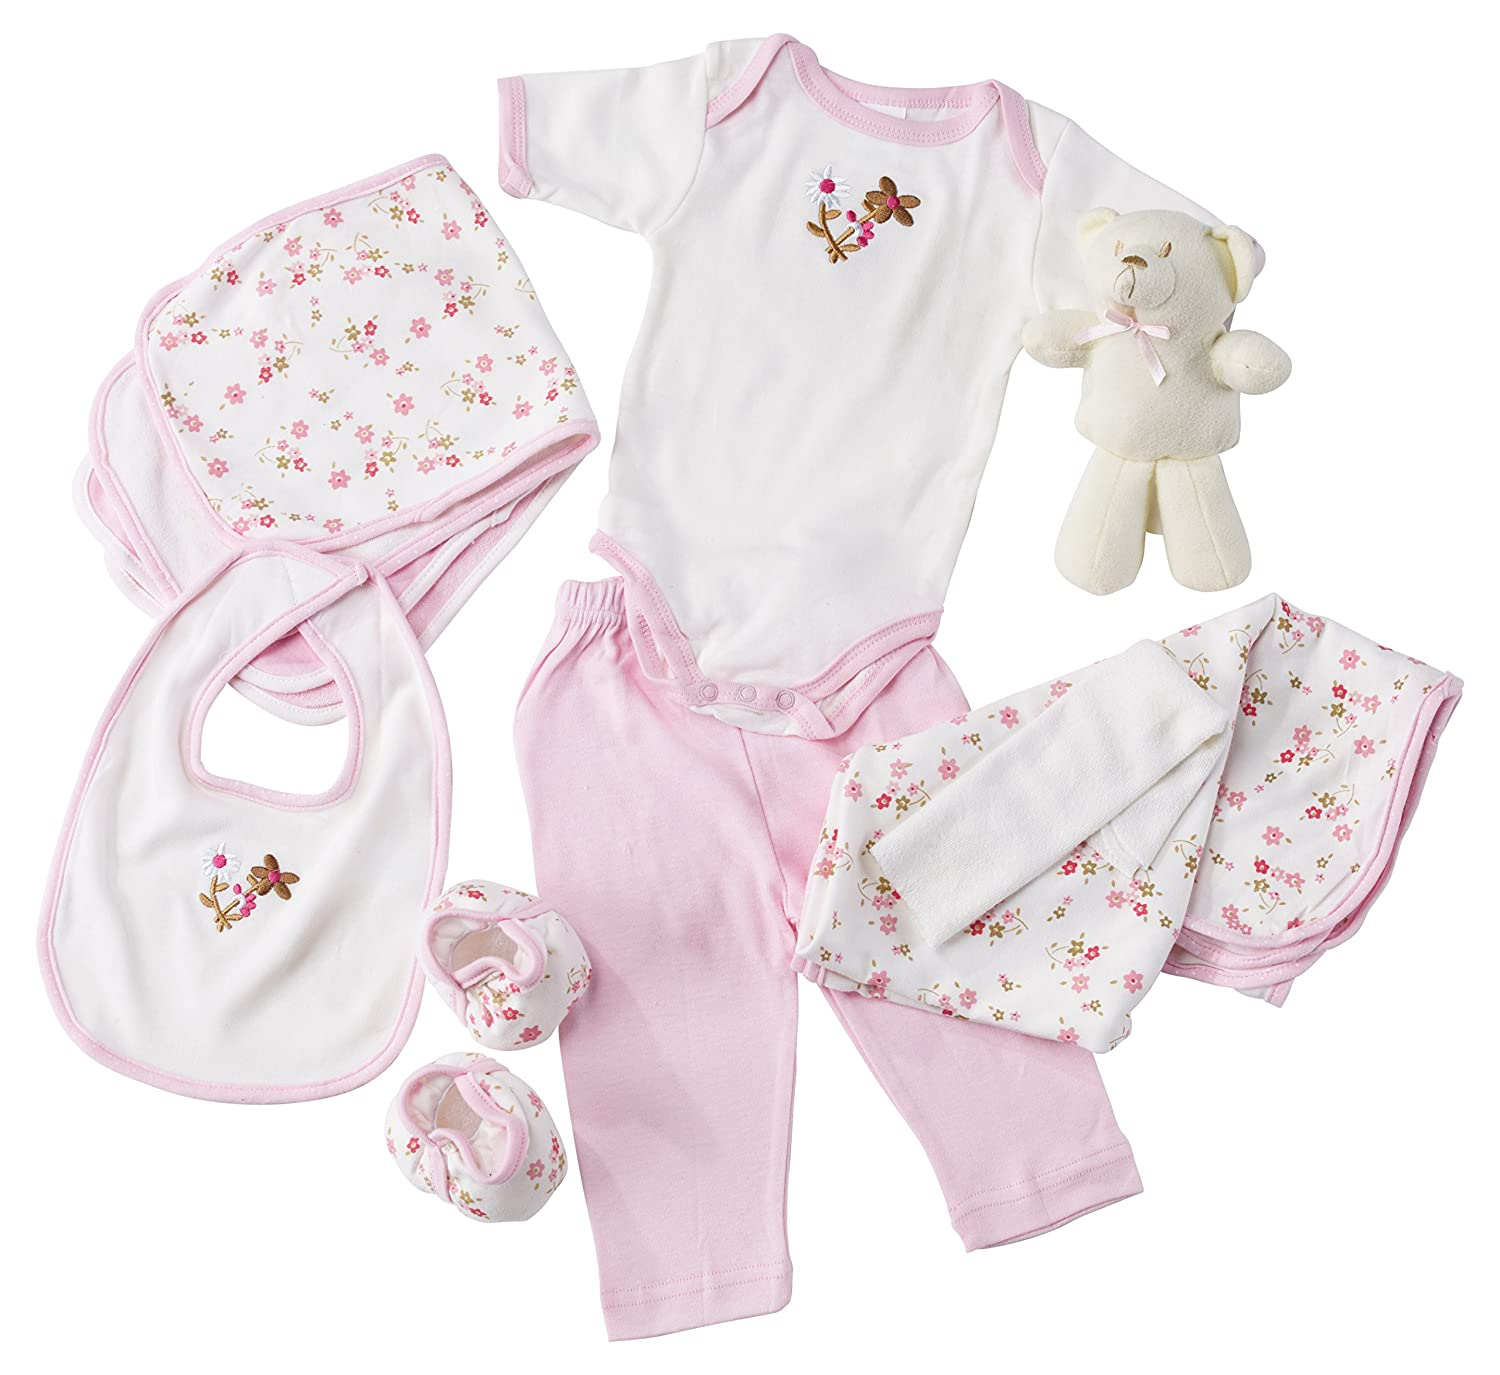 Big Oshi 10 Piece Layette Newborn Baby Gift Basket for Girls – Great Baby Shower or Registry Gift Box to Welcome a New Arrival – All Essentials Including Bodysuit, Blanket, Bib, and Booties, Pink